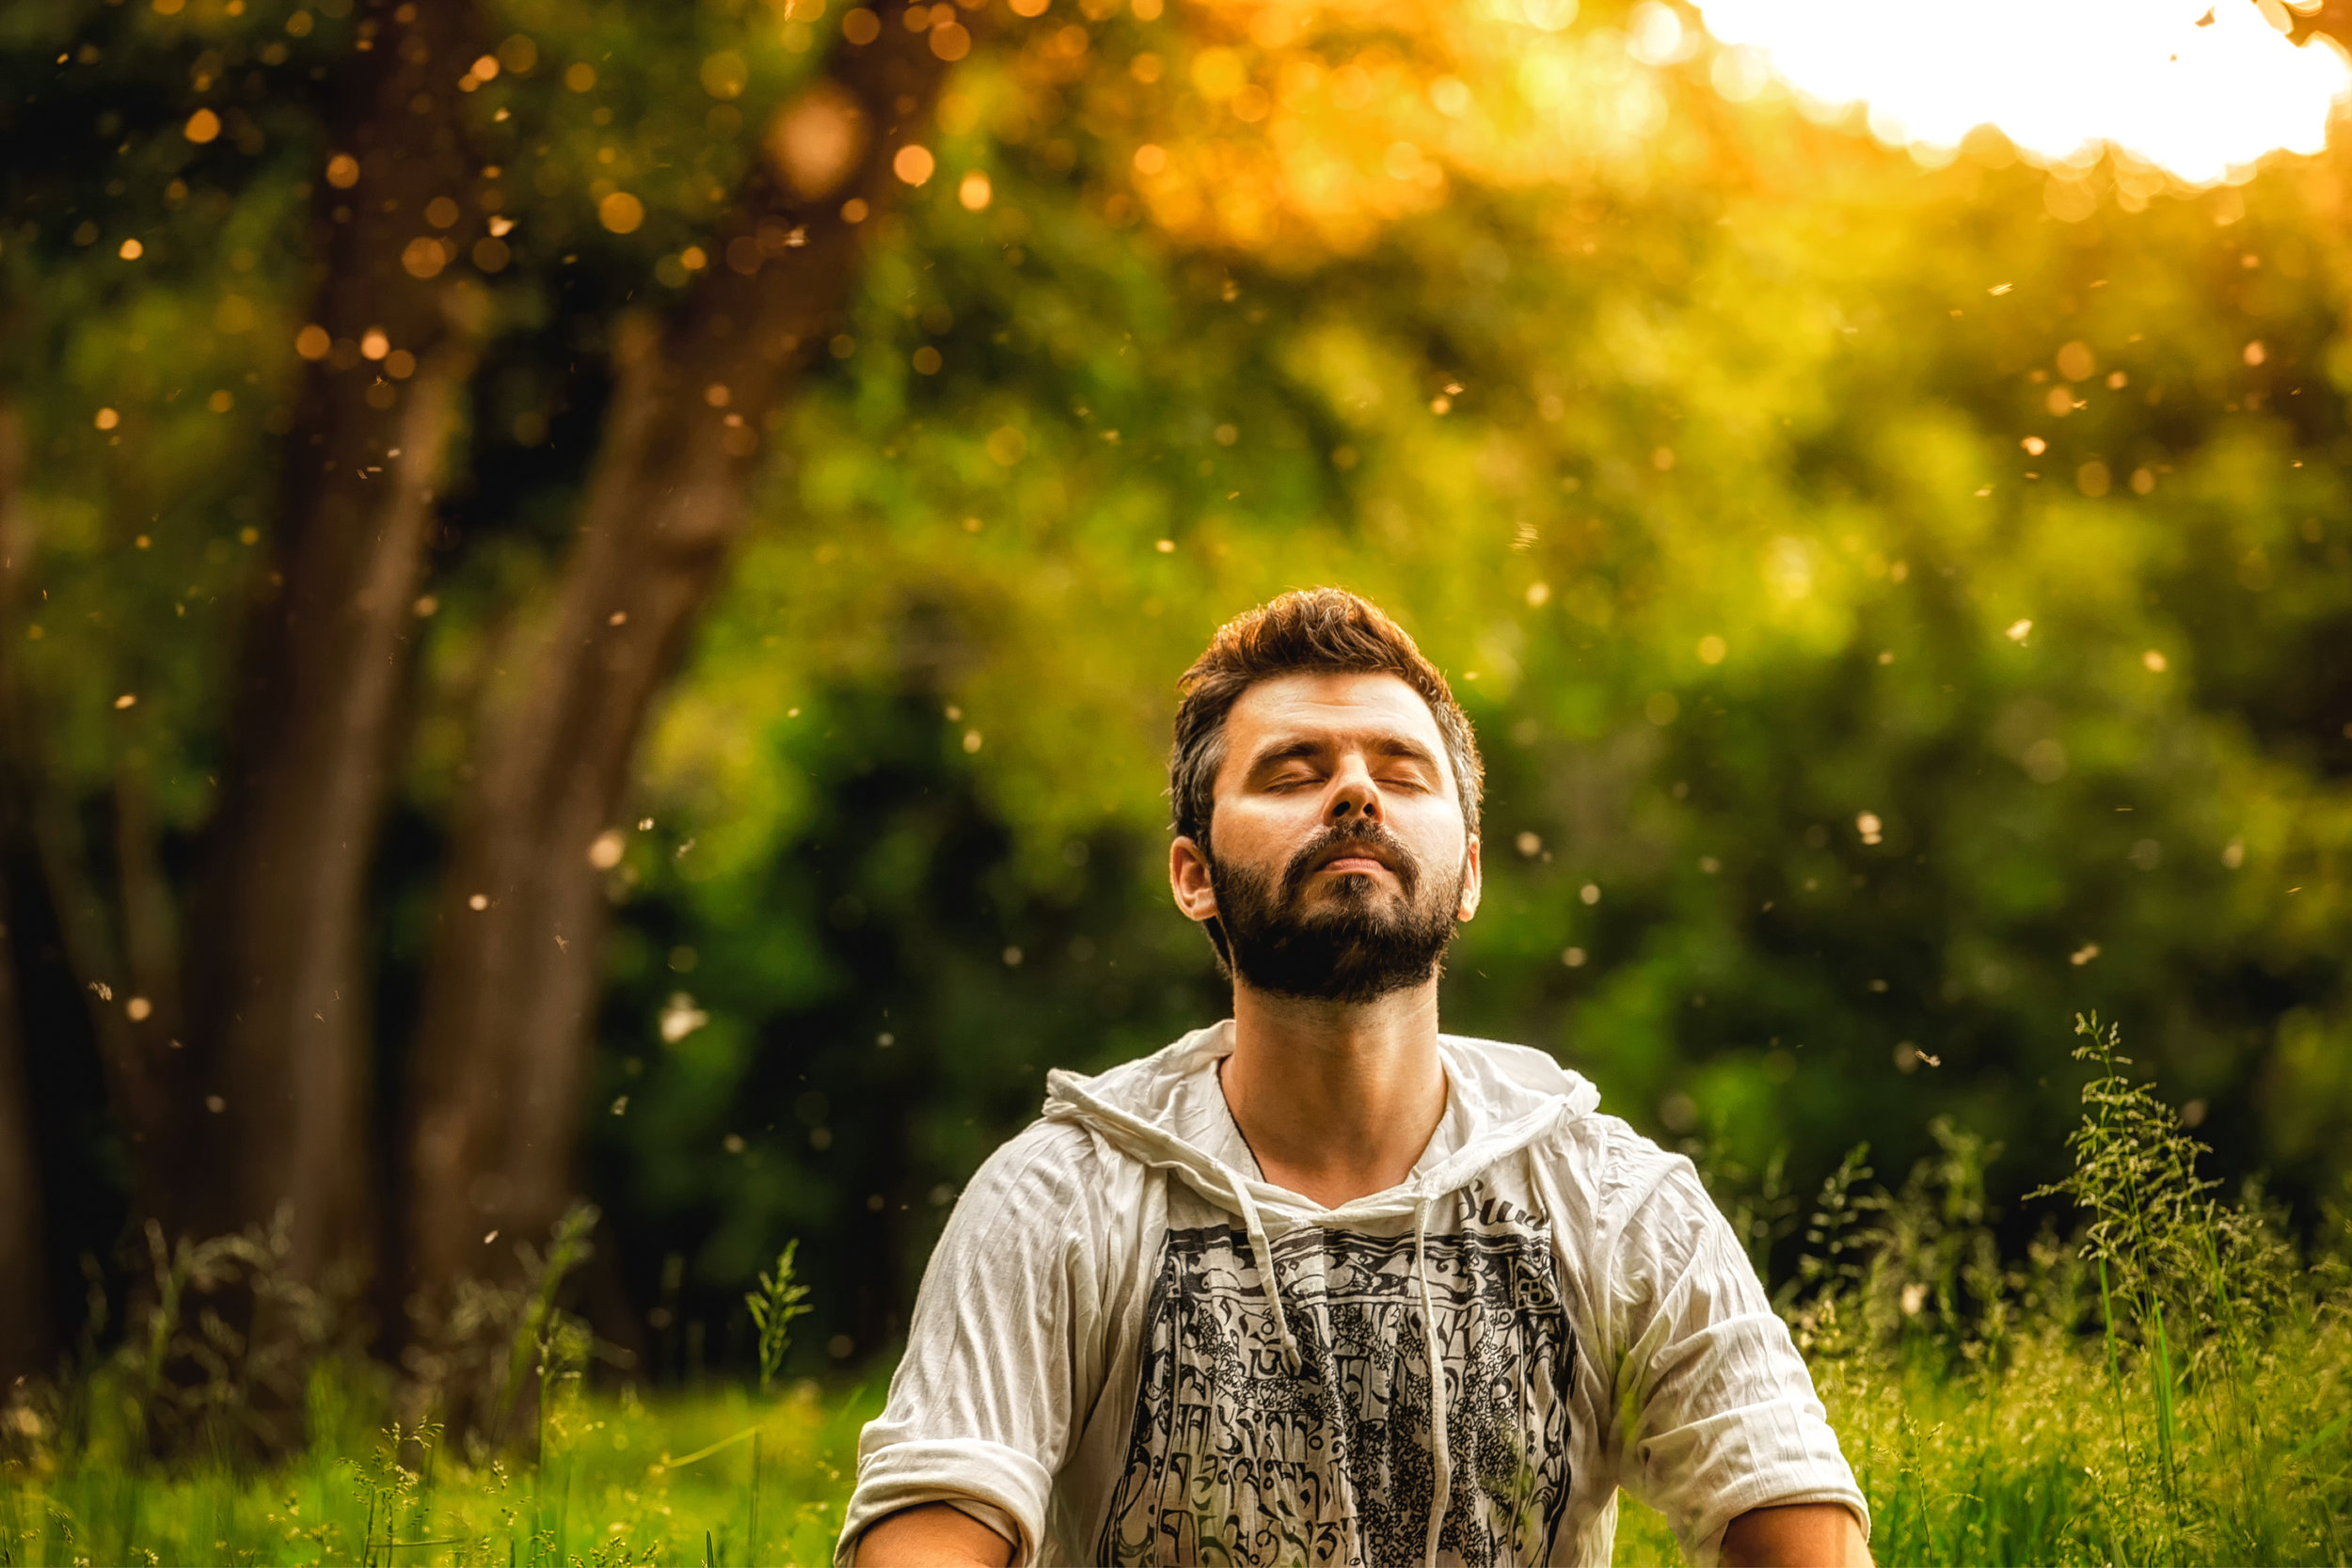 Clarity - This meditation technique has been reported to help give perspective, creating a sense of calm and clarity that has been likened to a 'comfort blanket' to help you feel more relaxed, balanced and peaceful.